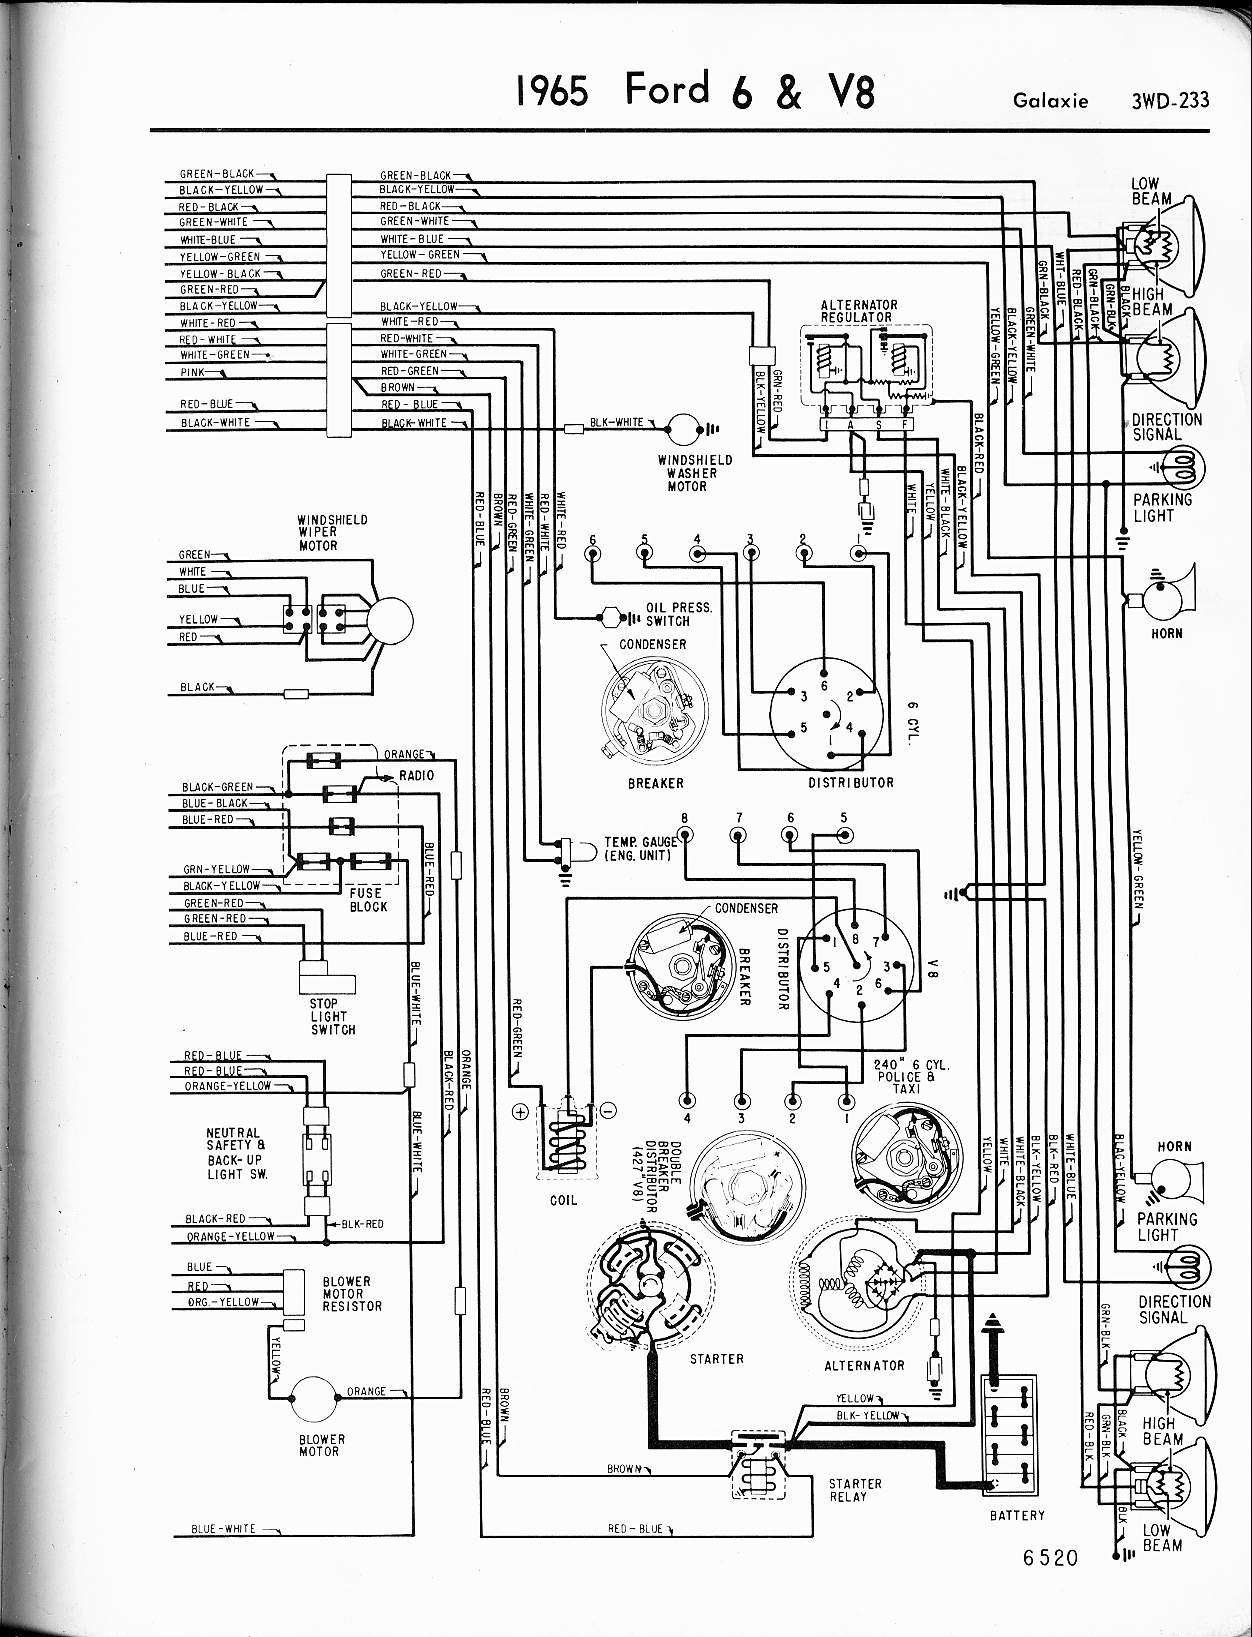 ford wiring diagrams 1965 6 v8 galaxie right